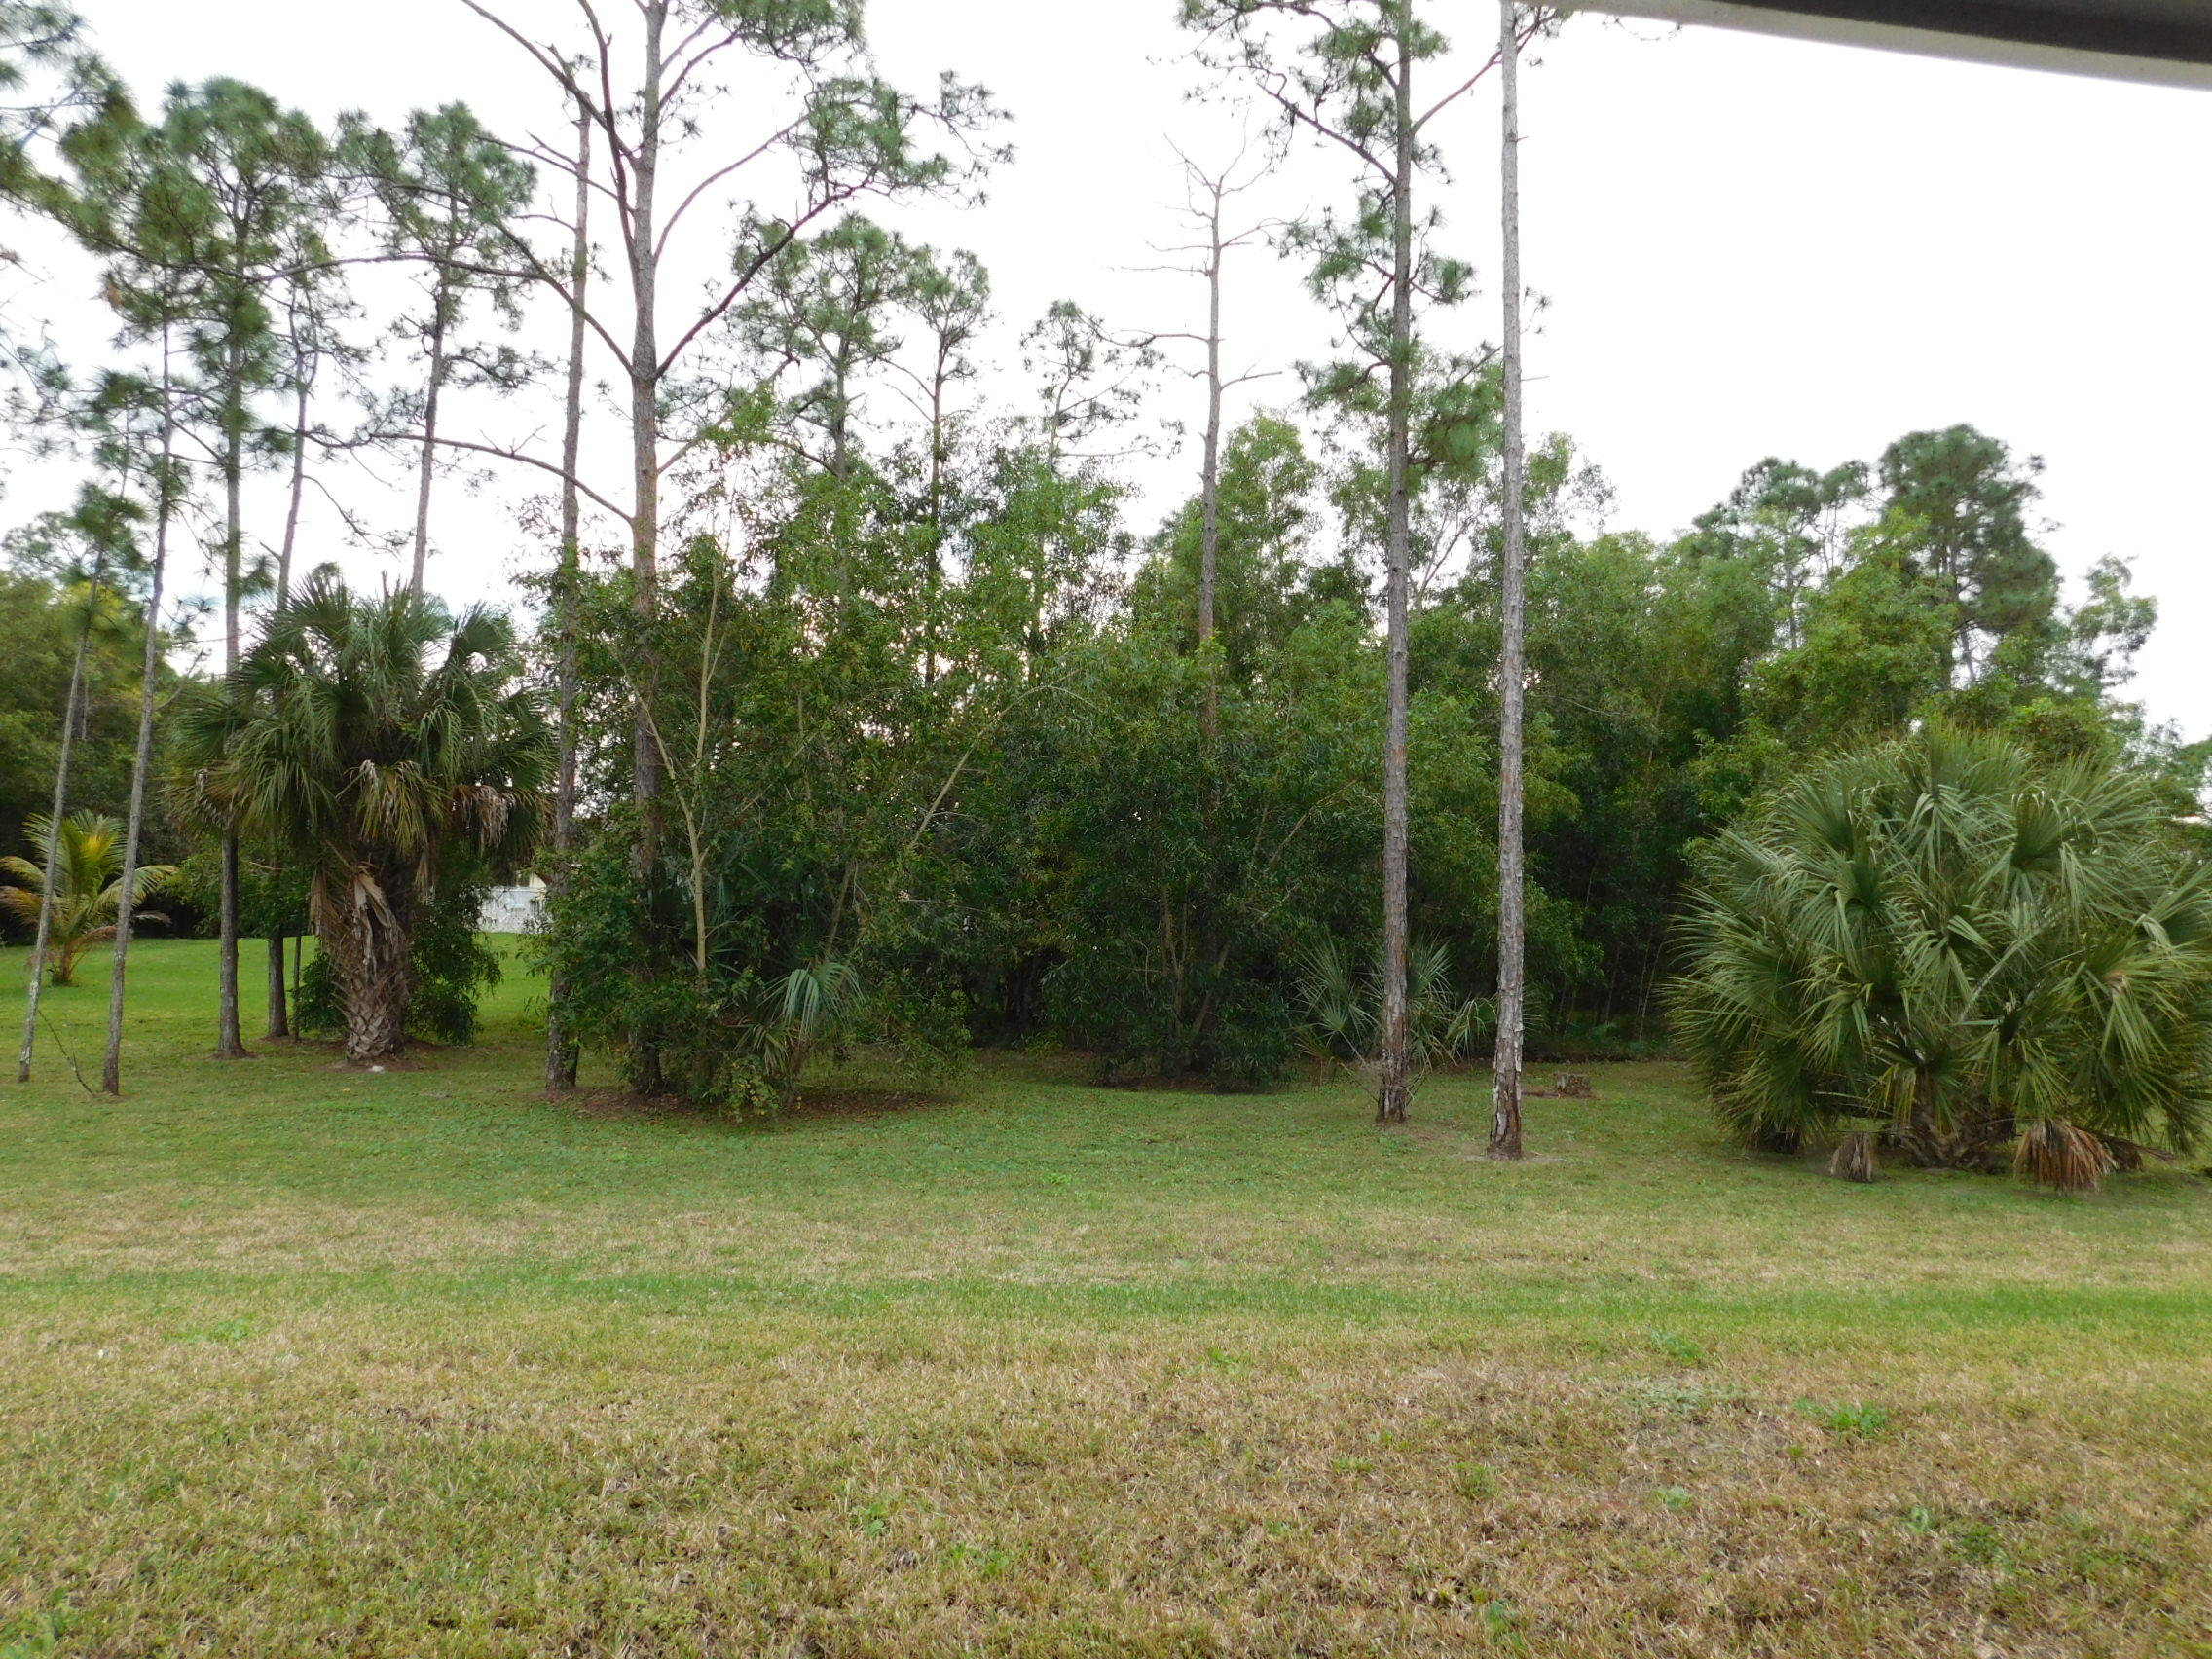 17436 91st Place The Acreage, FL 33470 small photo 2